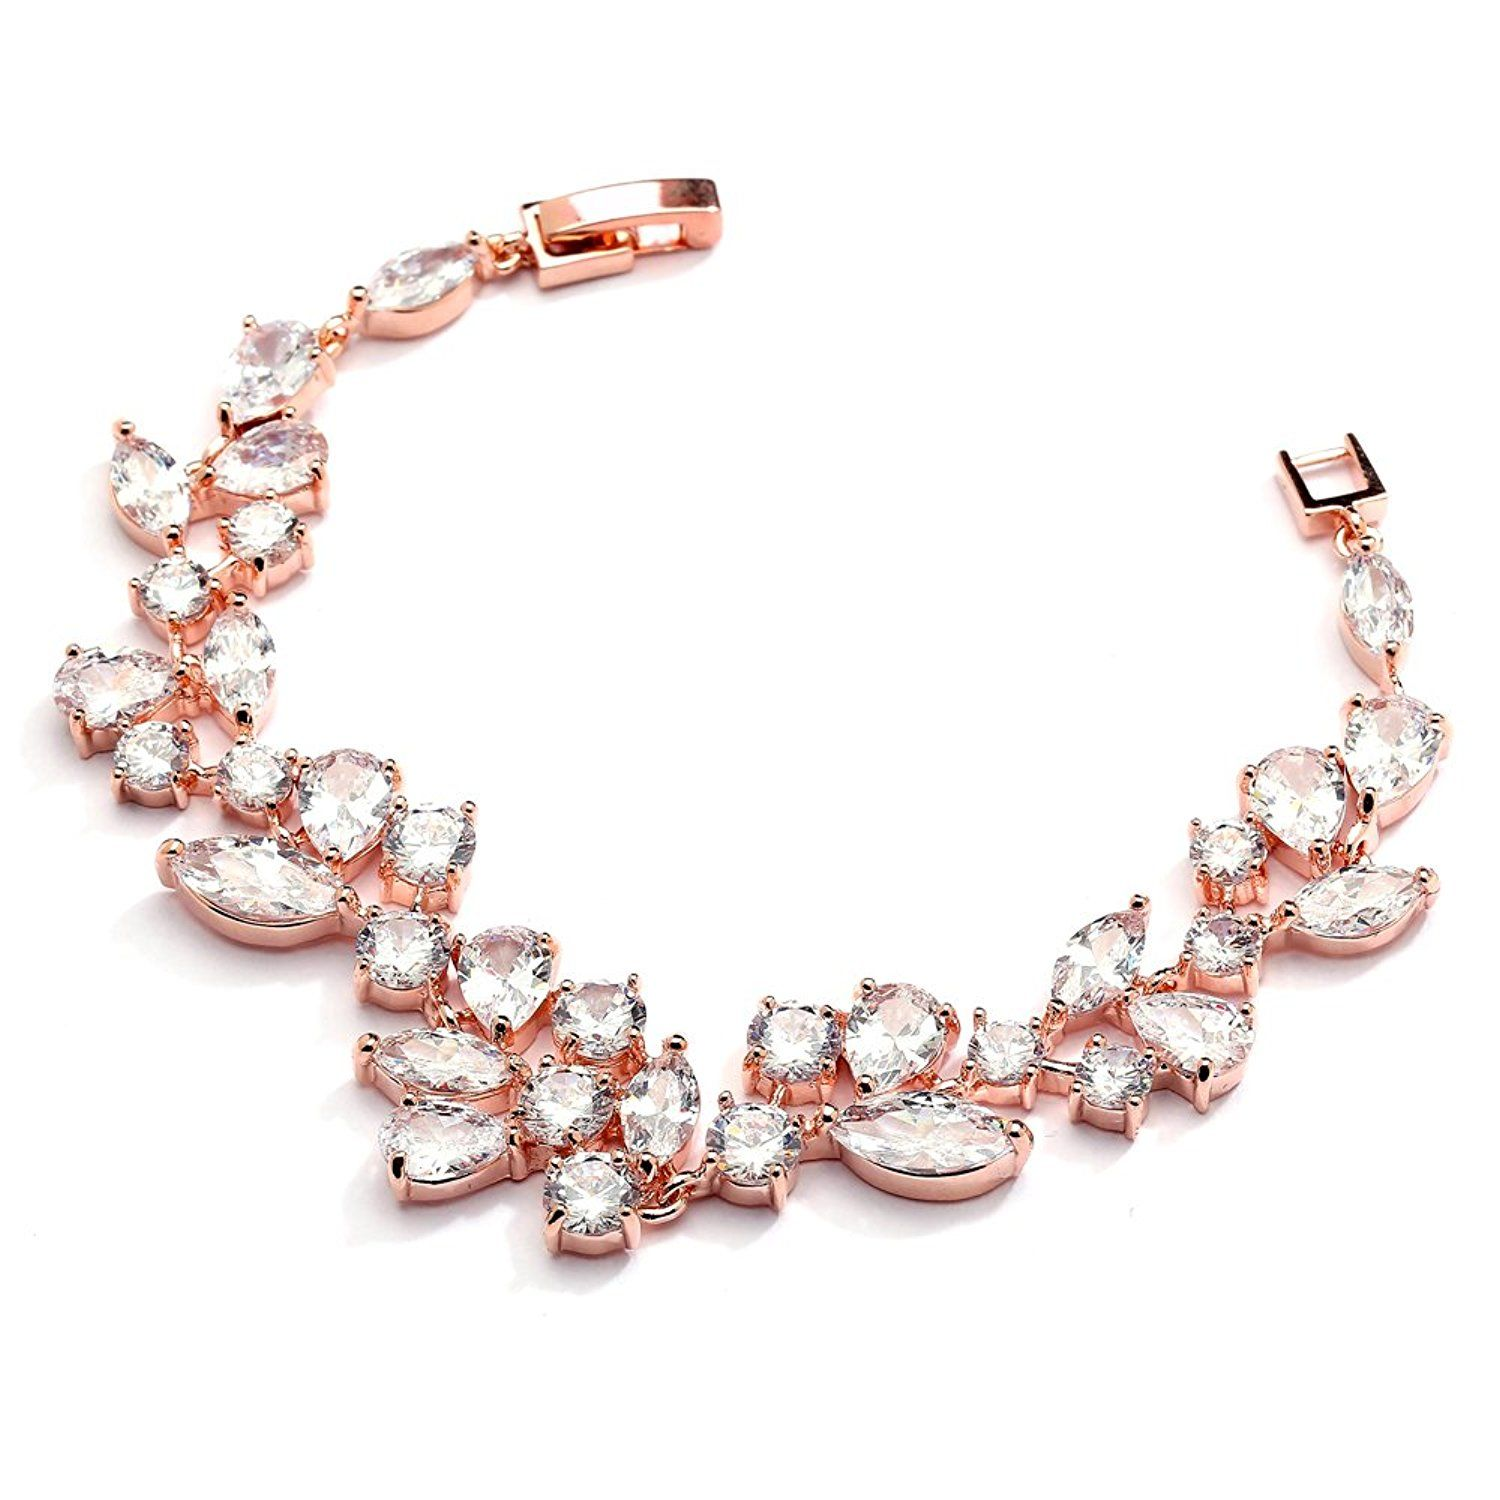 Smile Mariell Mosaic Rose Gold Cz Wedding Bridal Bracelet 6 1 4